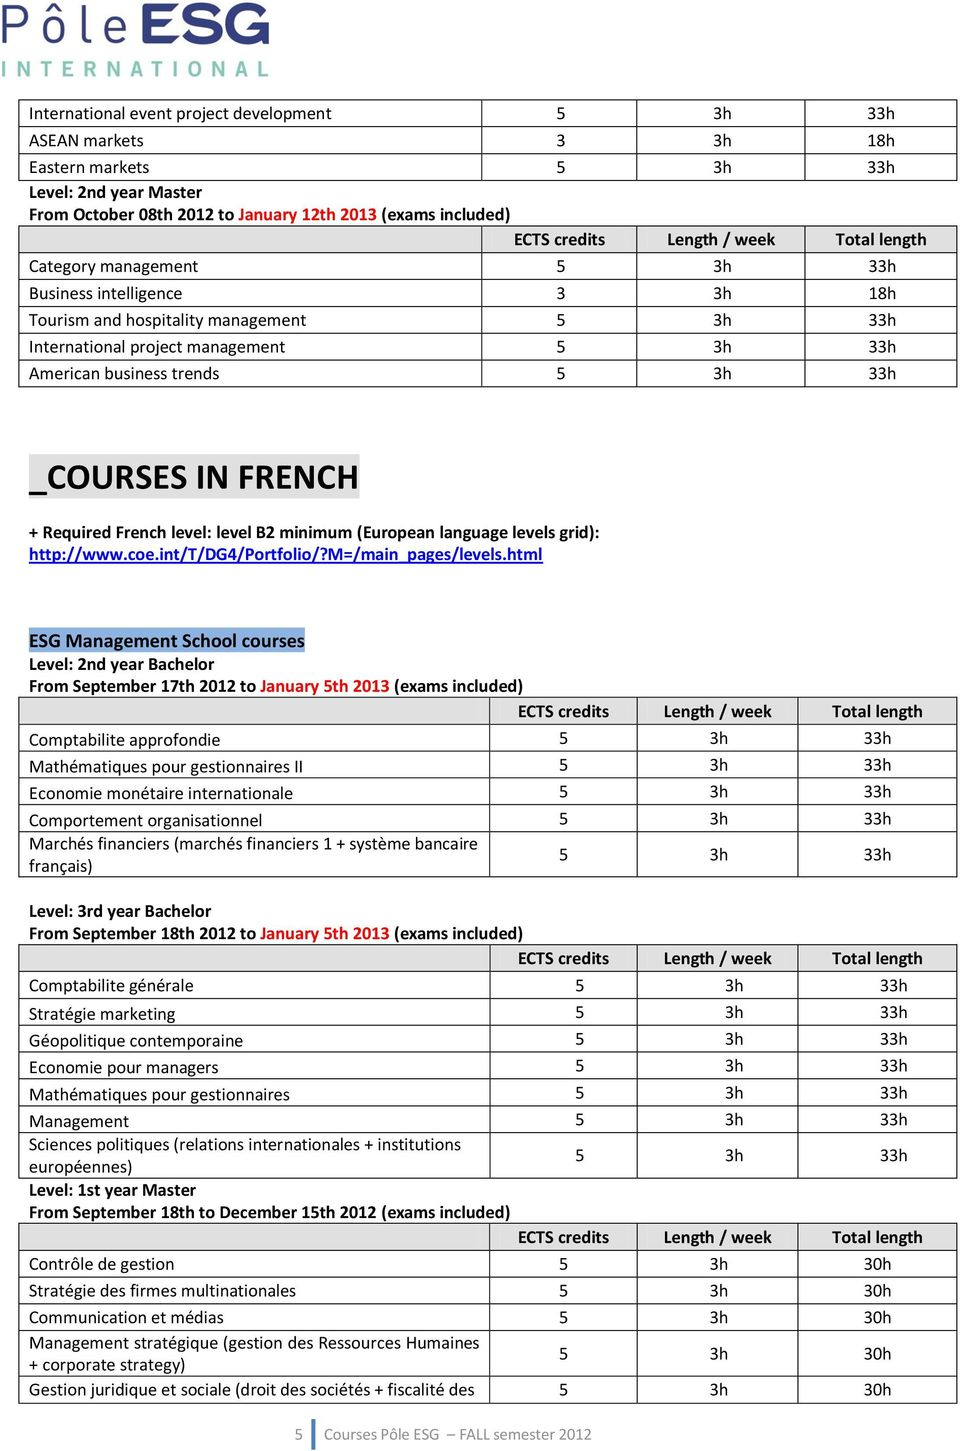 Required French level: level B2 minimum (European language levels grid): http://www.coe.int/t/dg4/portfolio/?m=/main_pages/levels.